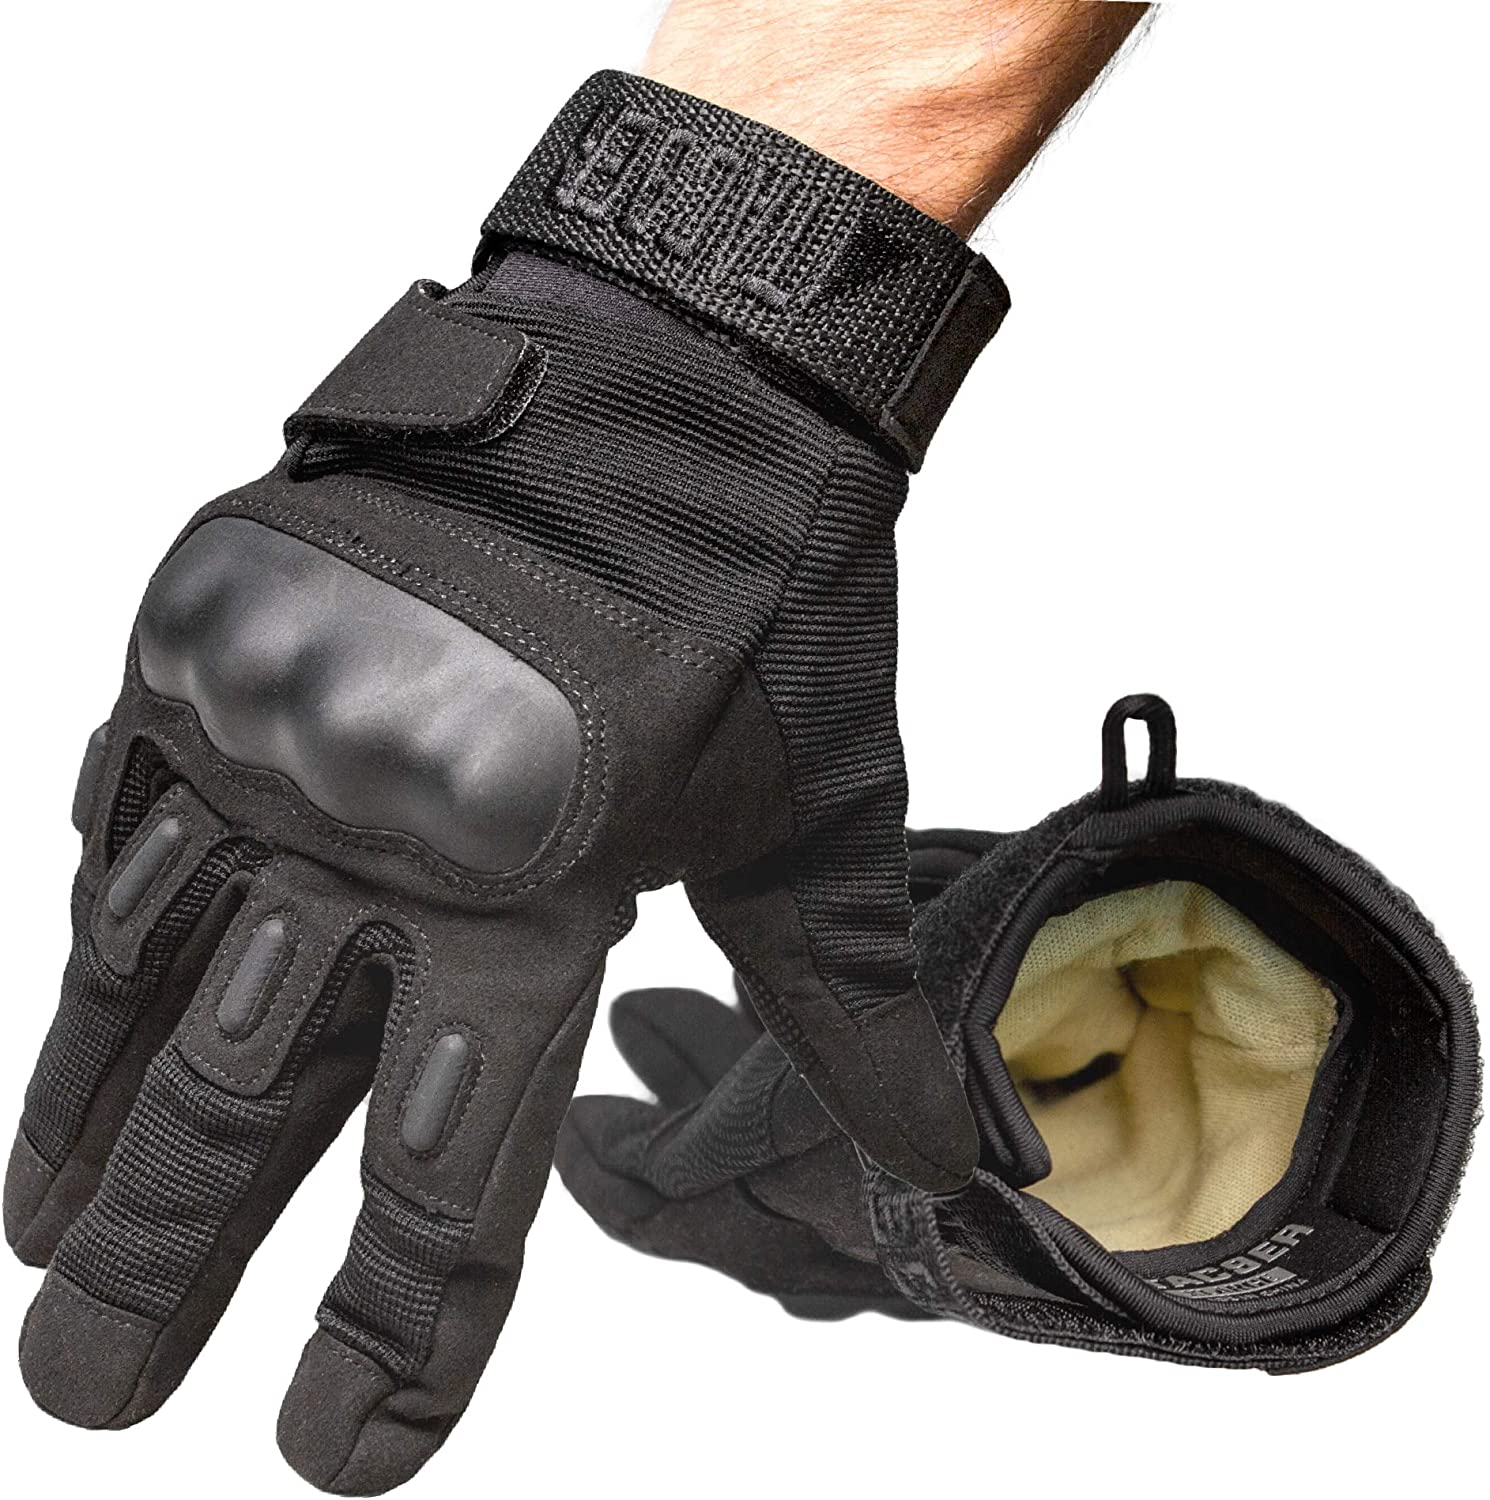 Tac9er Kevlar-Lined Tactical Gloves